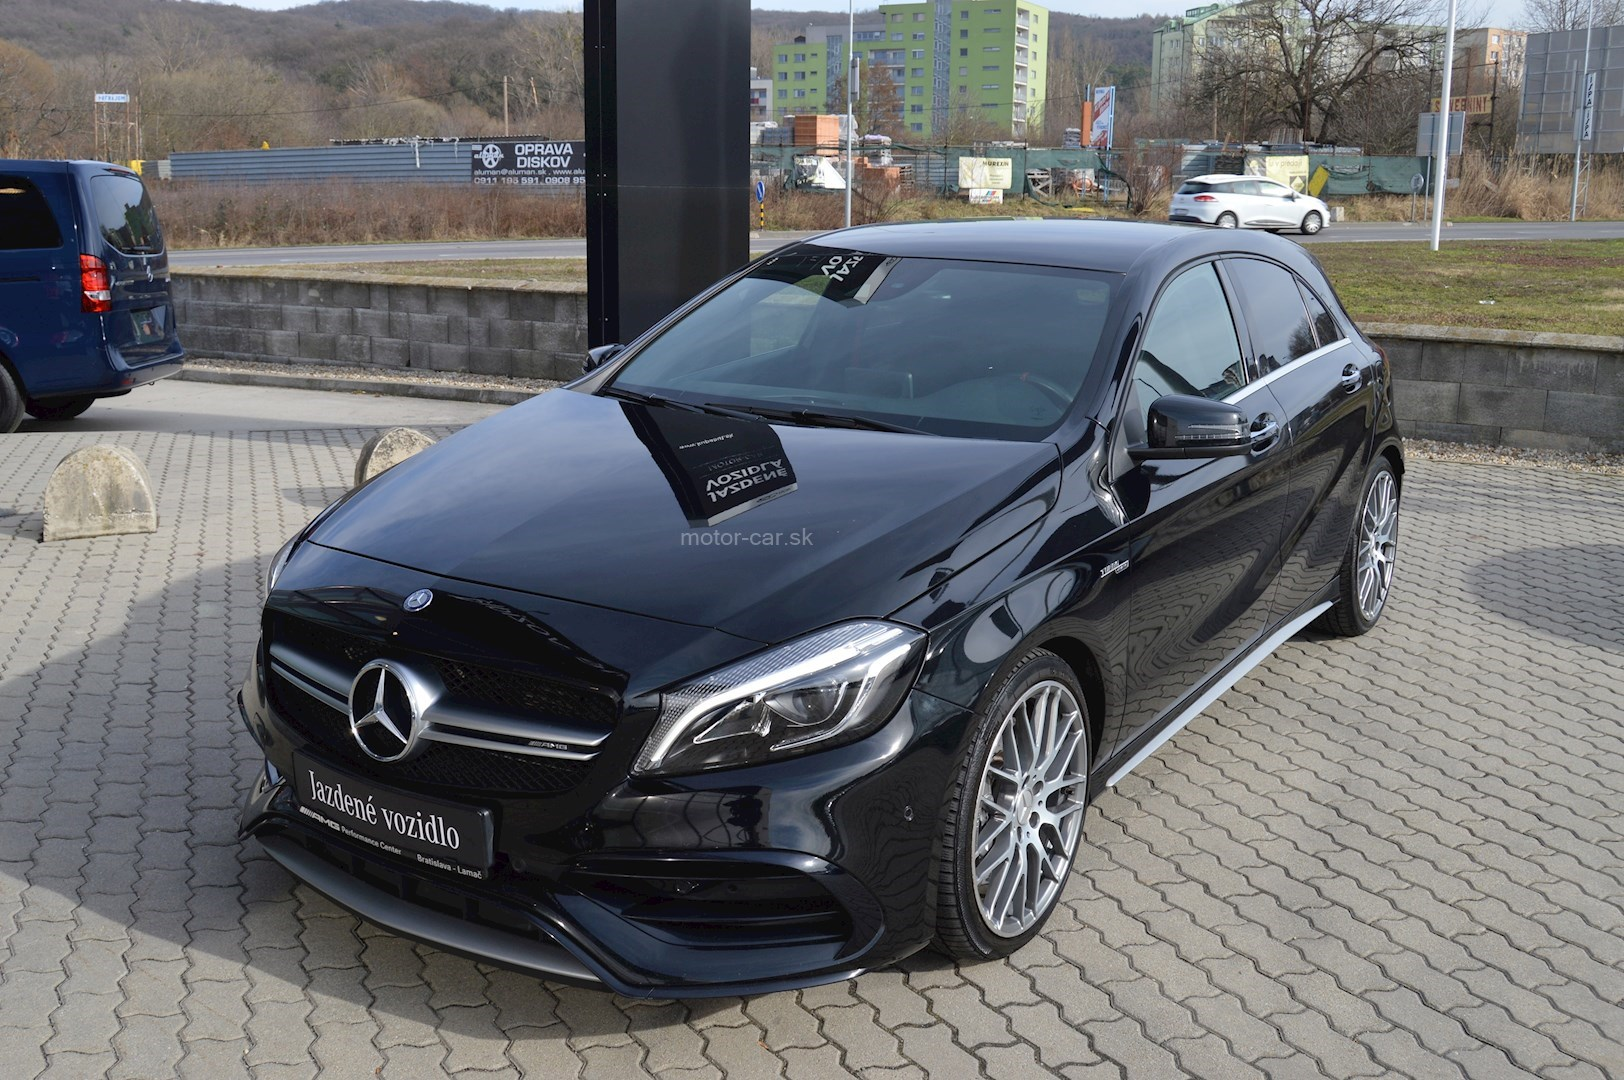 mercedes-benz mercedes-amg a 45 4matic sedan